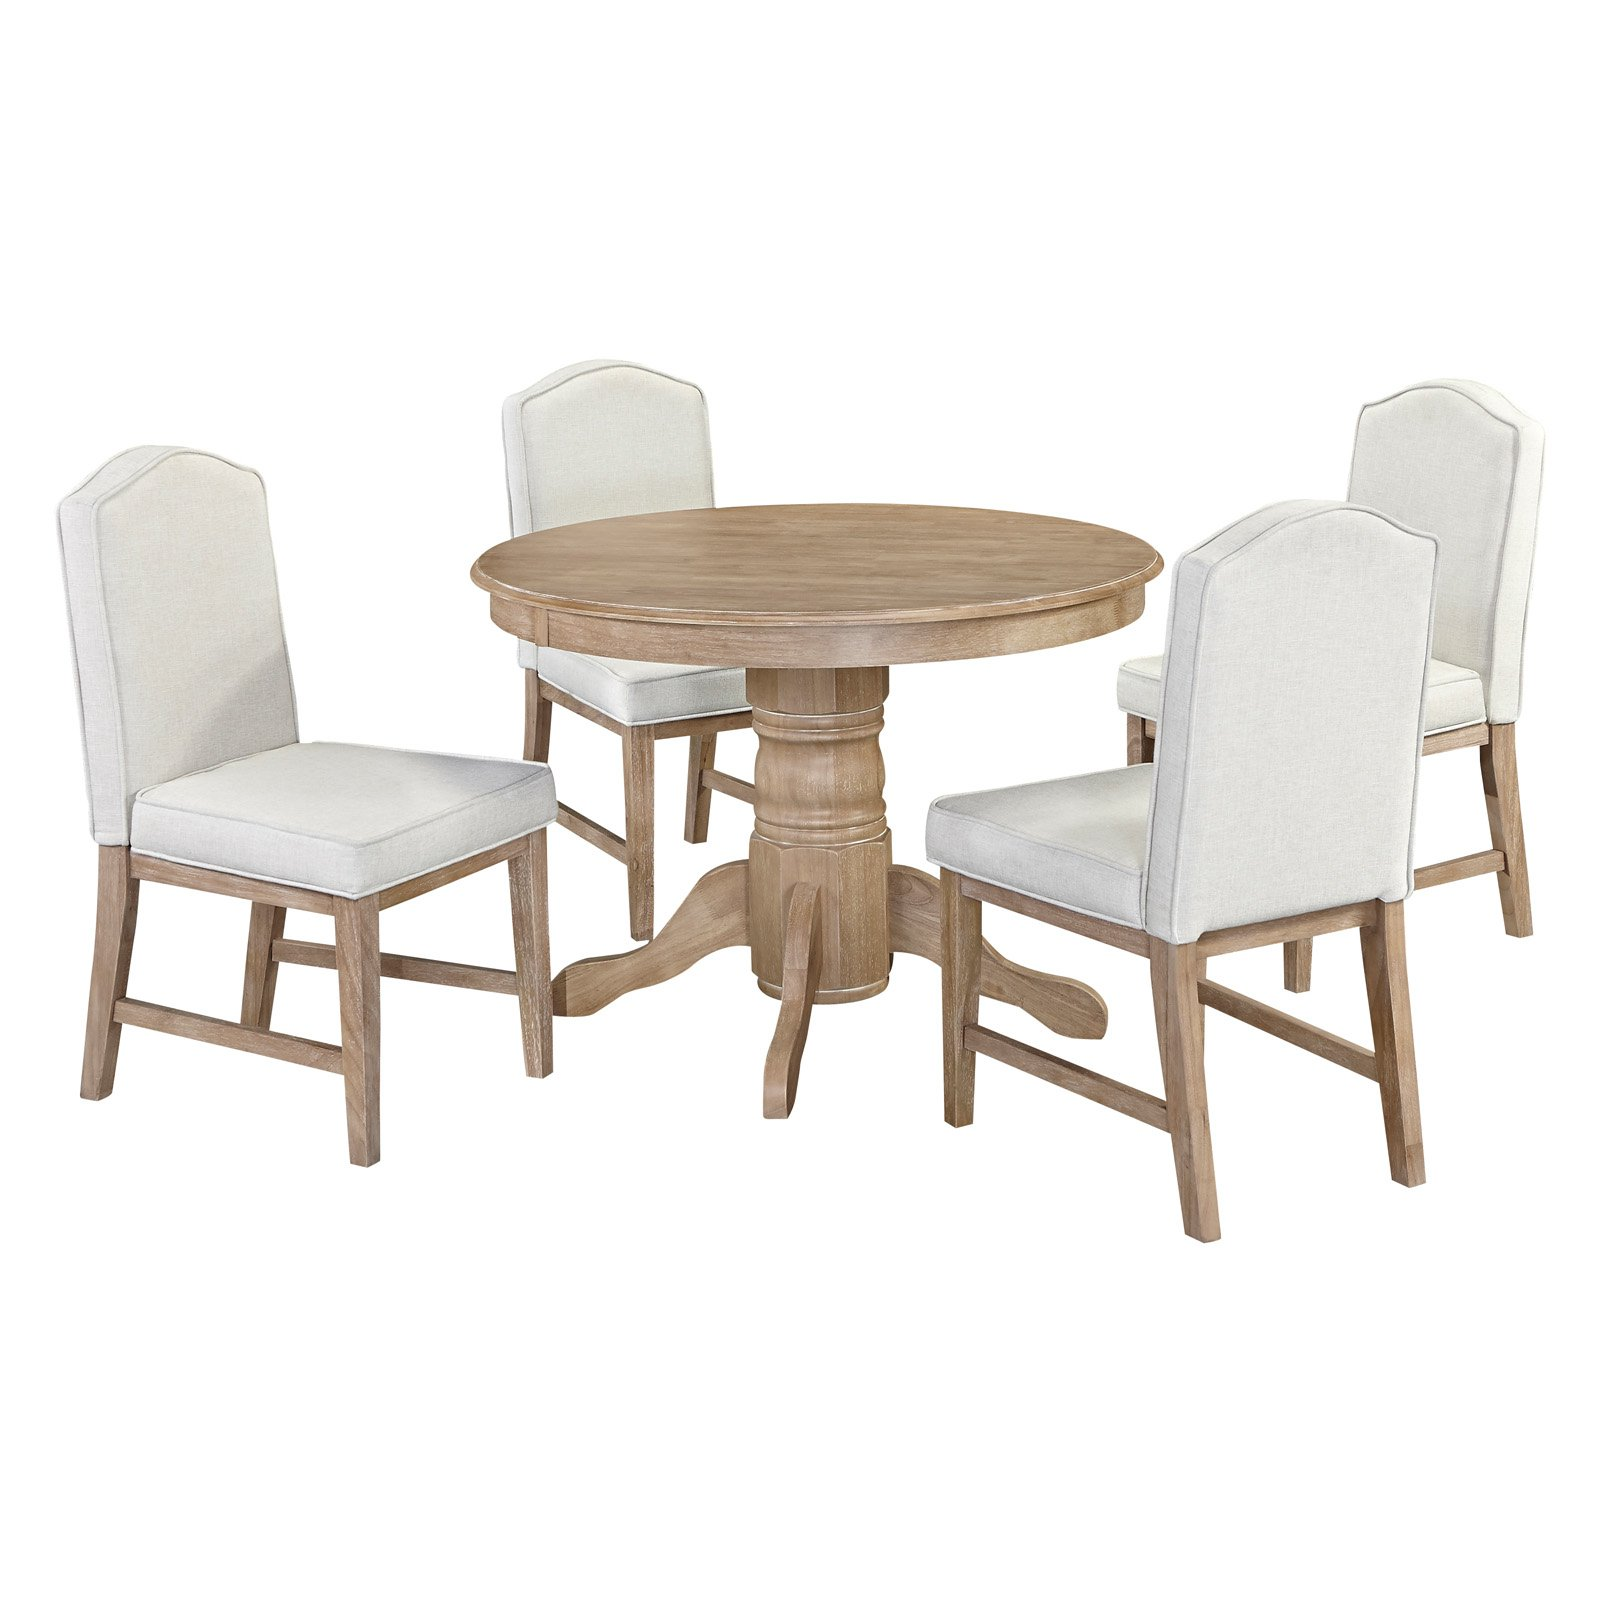 Home Styles Classic 5 Piece Dining Set With Upholstered Dining Chairs by Home Styles